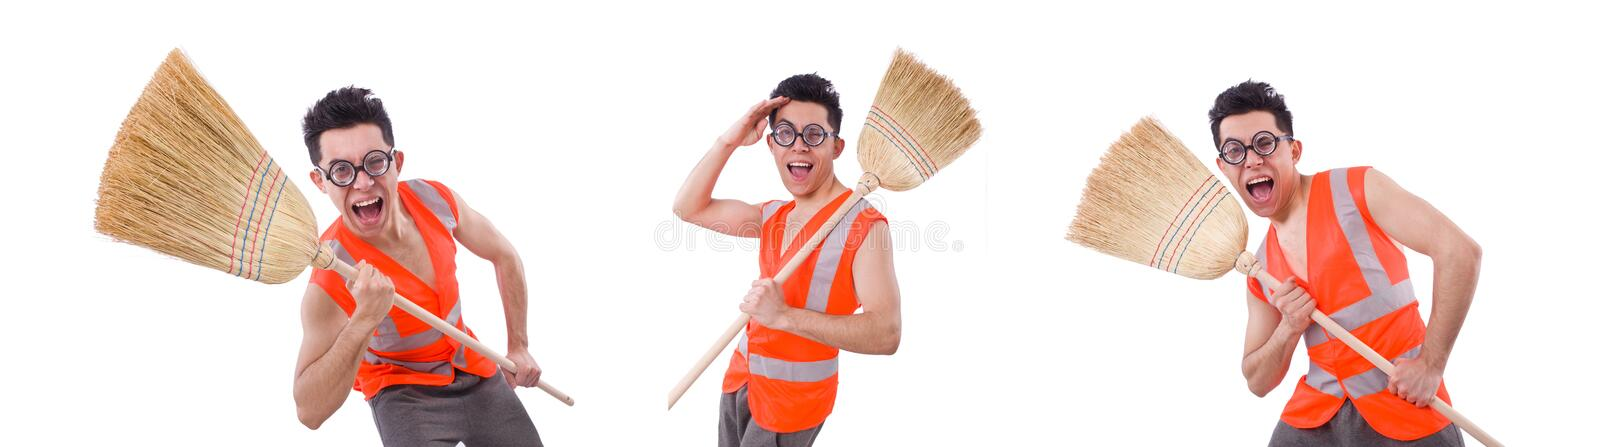 Funny janitor isolated on white royalty free stock photography